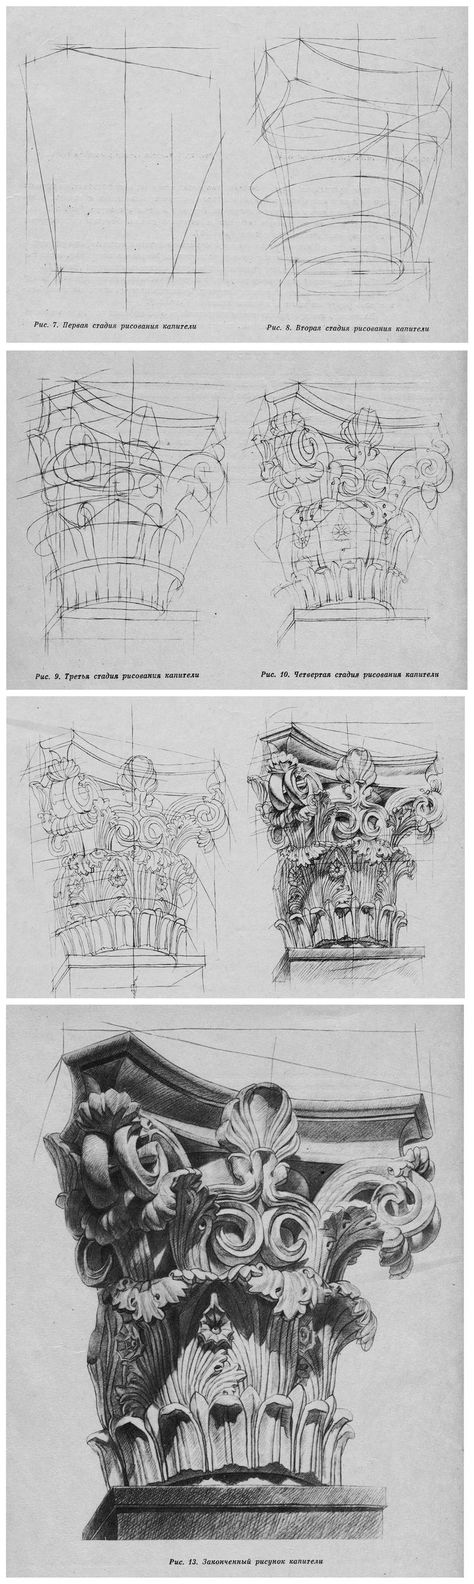 Pinned onto Architectural SketchesBoard in Sketches